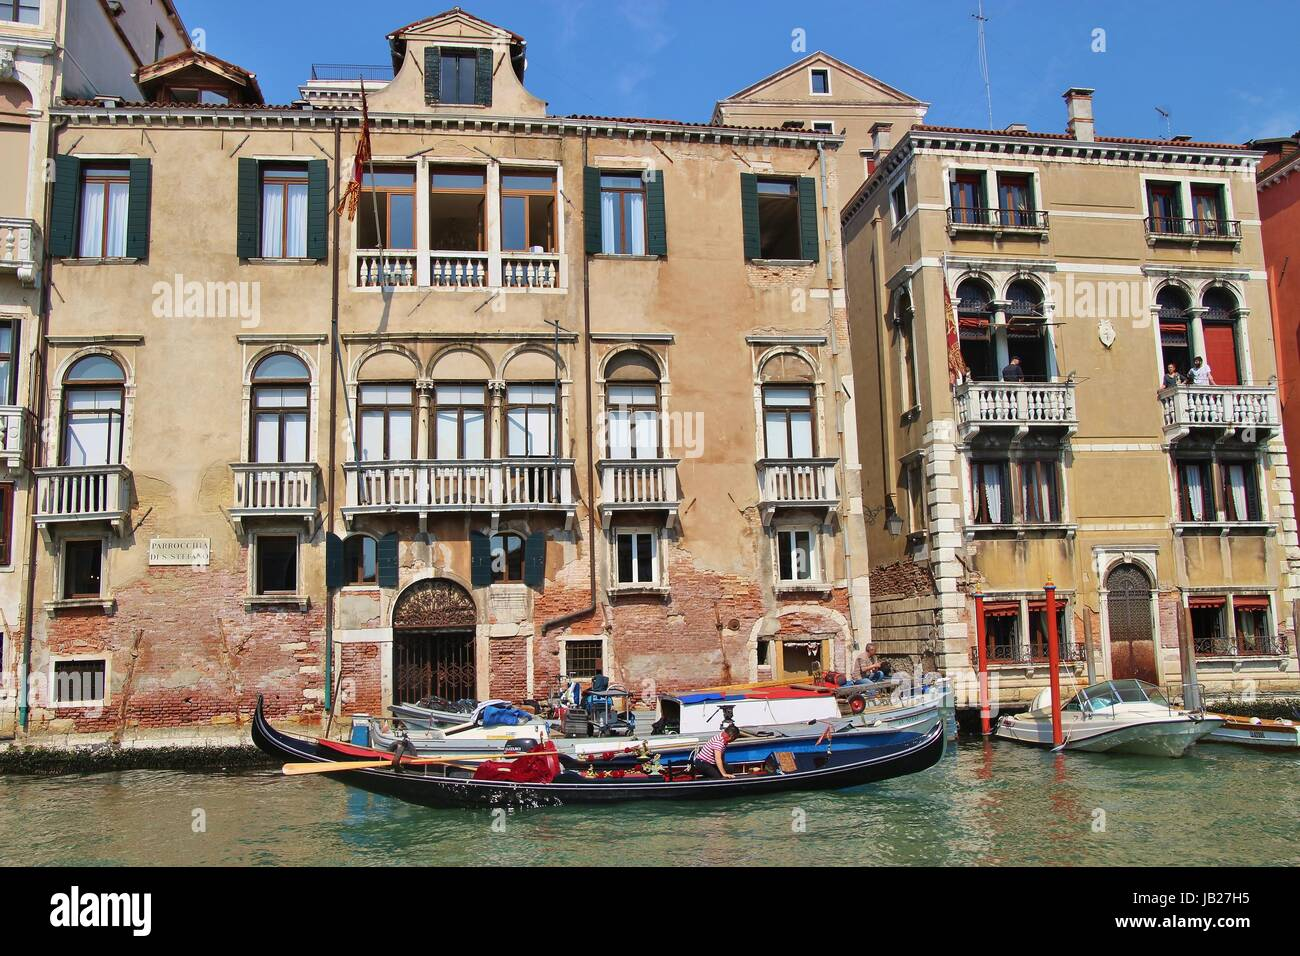 Gondola and buildings on the Grand Canal, San Stefano. Everyday scene with inhabitants on the balconies. Venice, - Stock Image